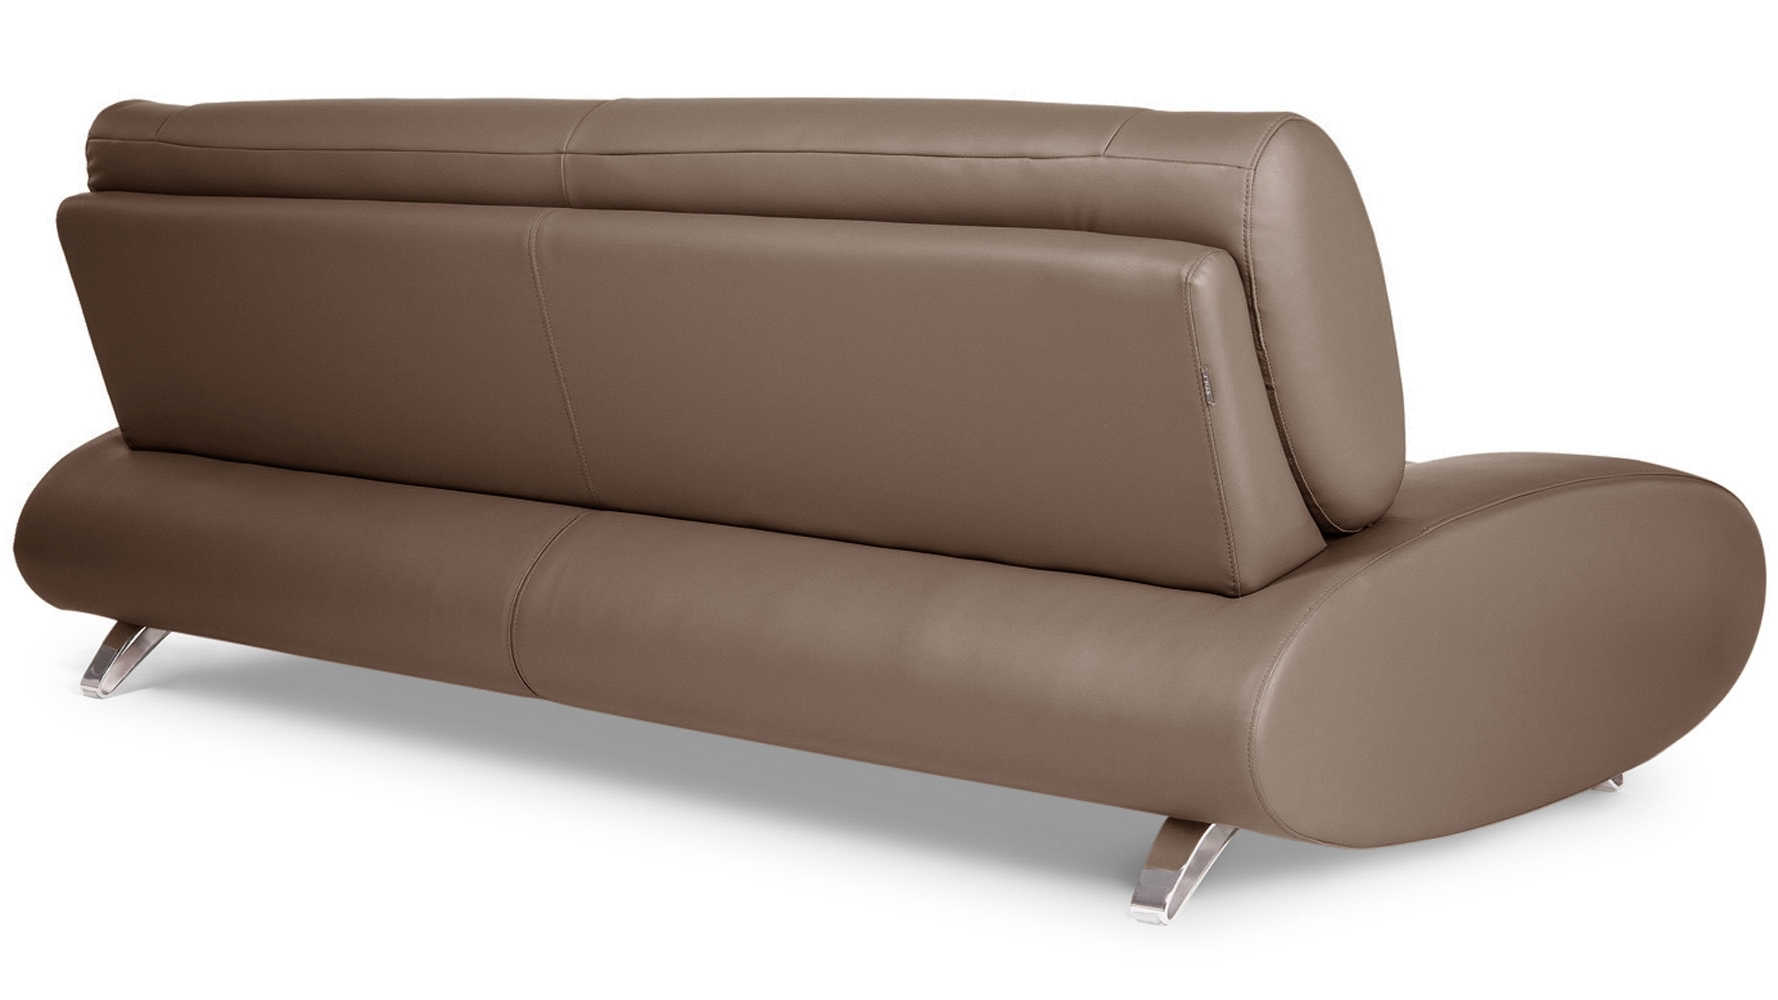 Zuri Furniture Regarding Aspen Leather Sofas (View 18 of 20)